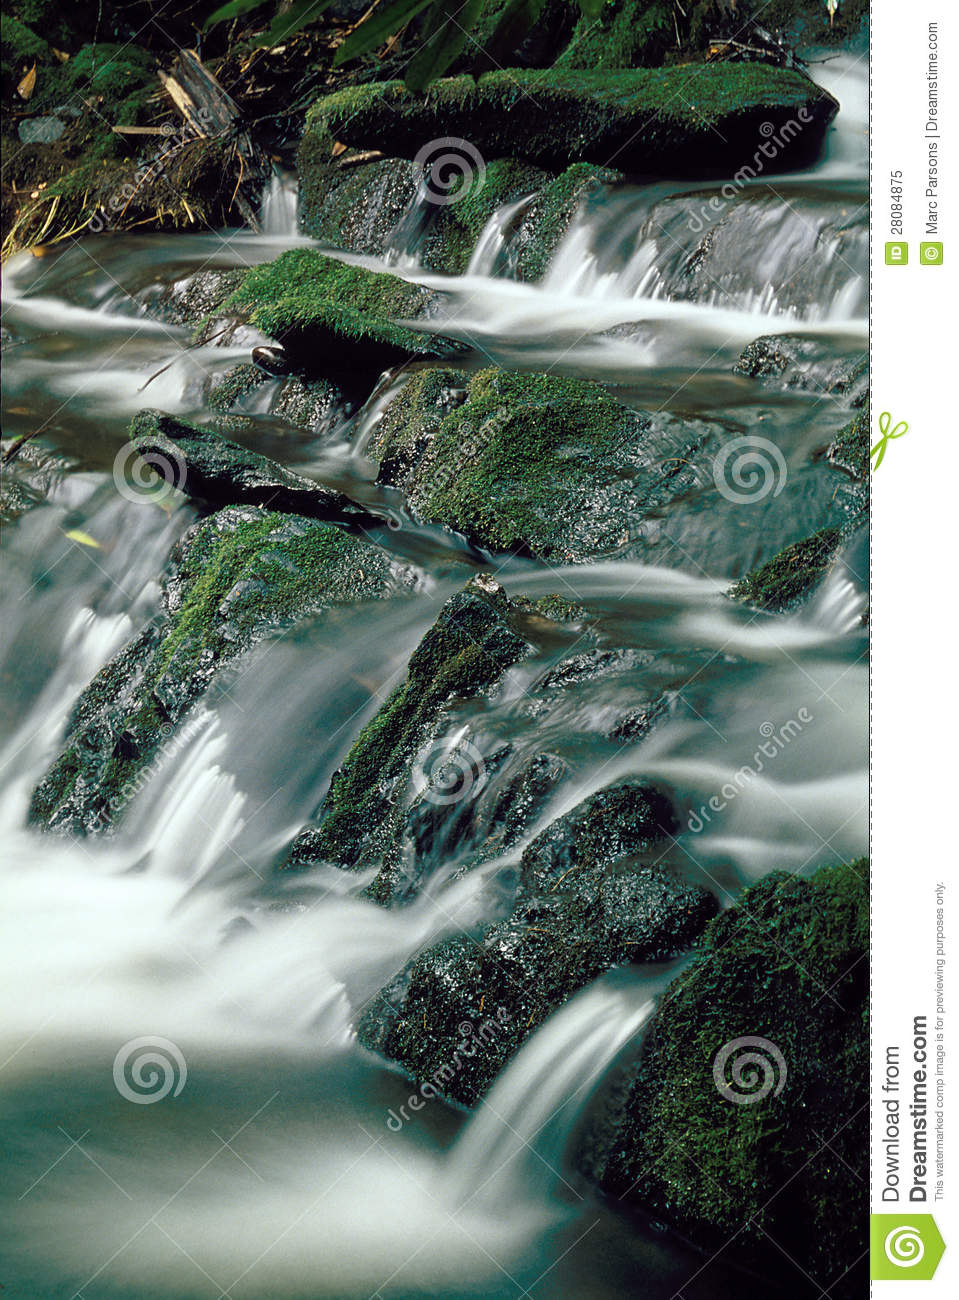 Mountain Stream Over Mossy Rocks Royalty Free Stock Photo   Image